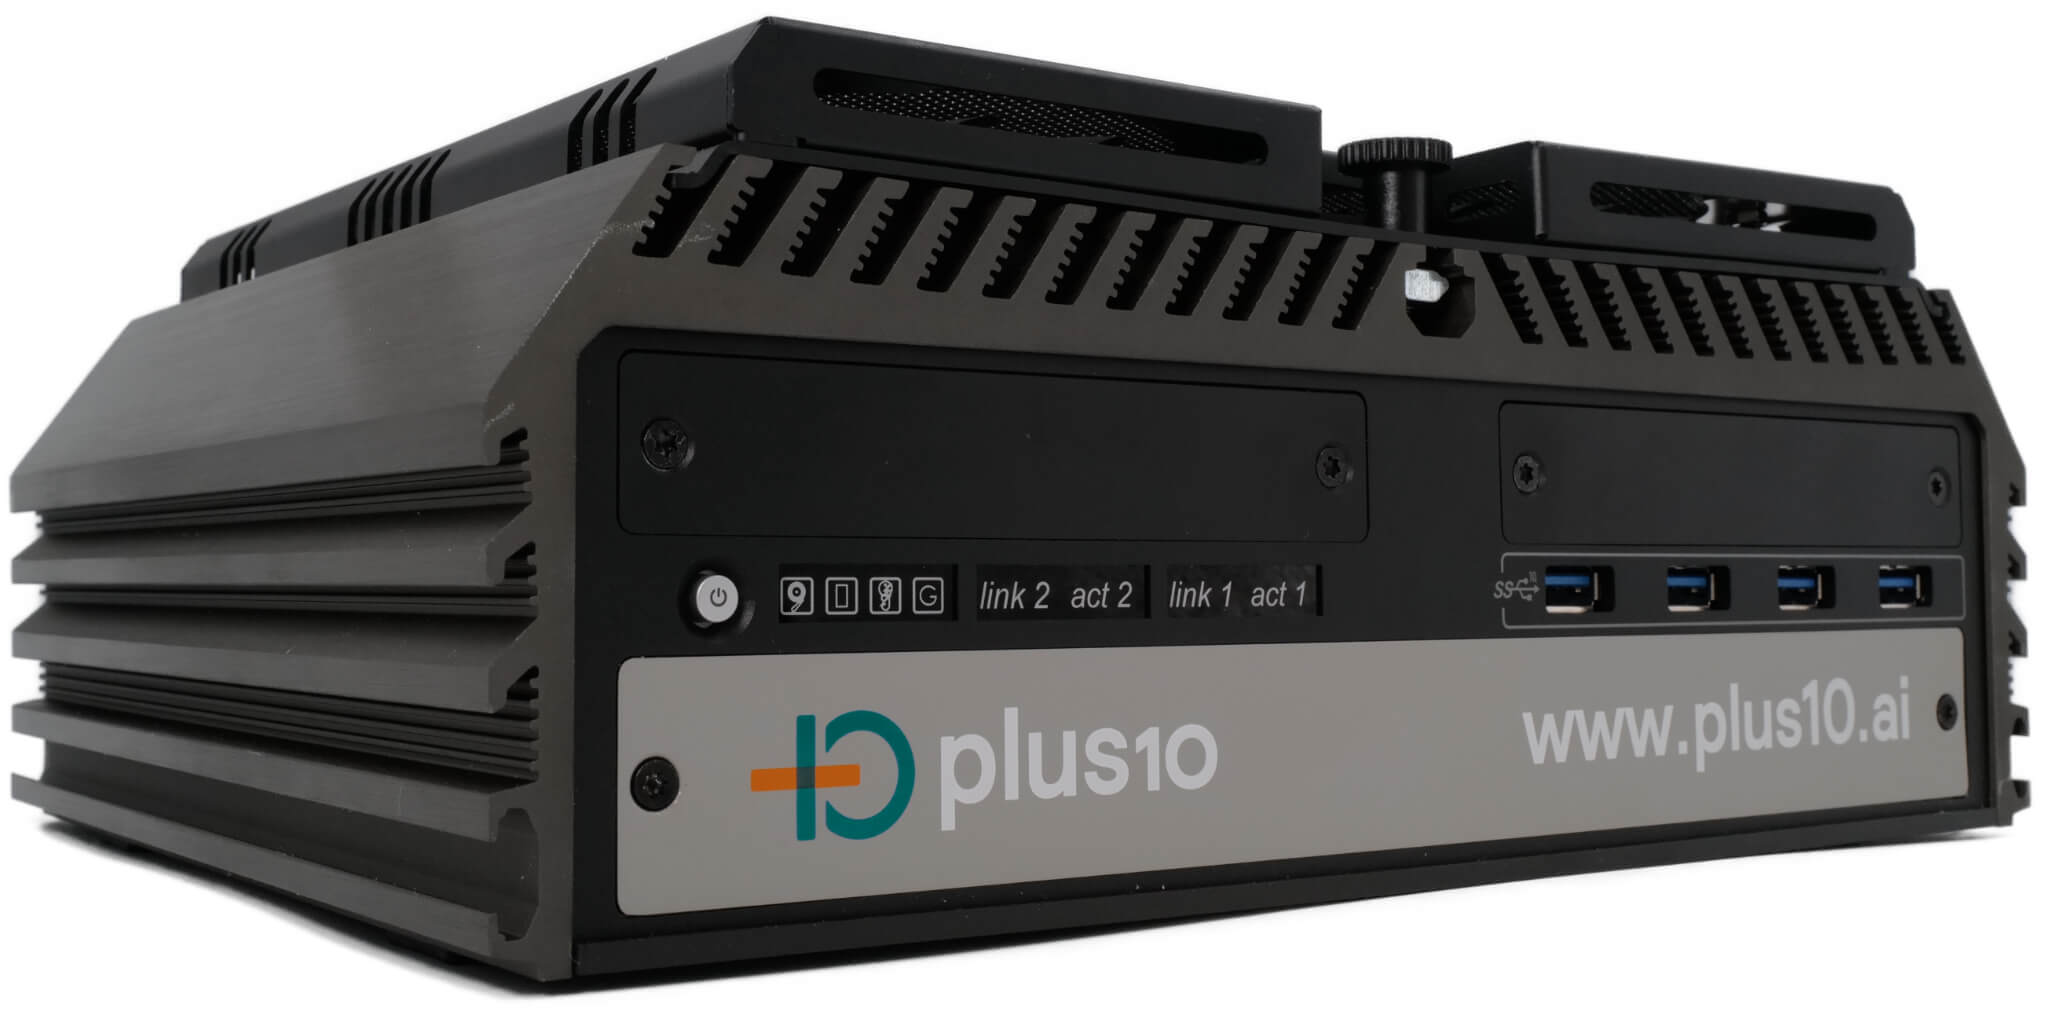 industrie_pc_data_collector_plus10